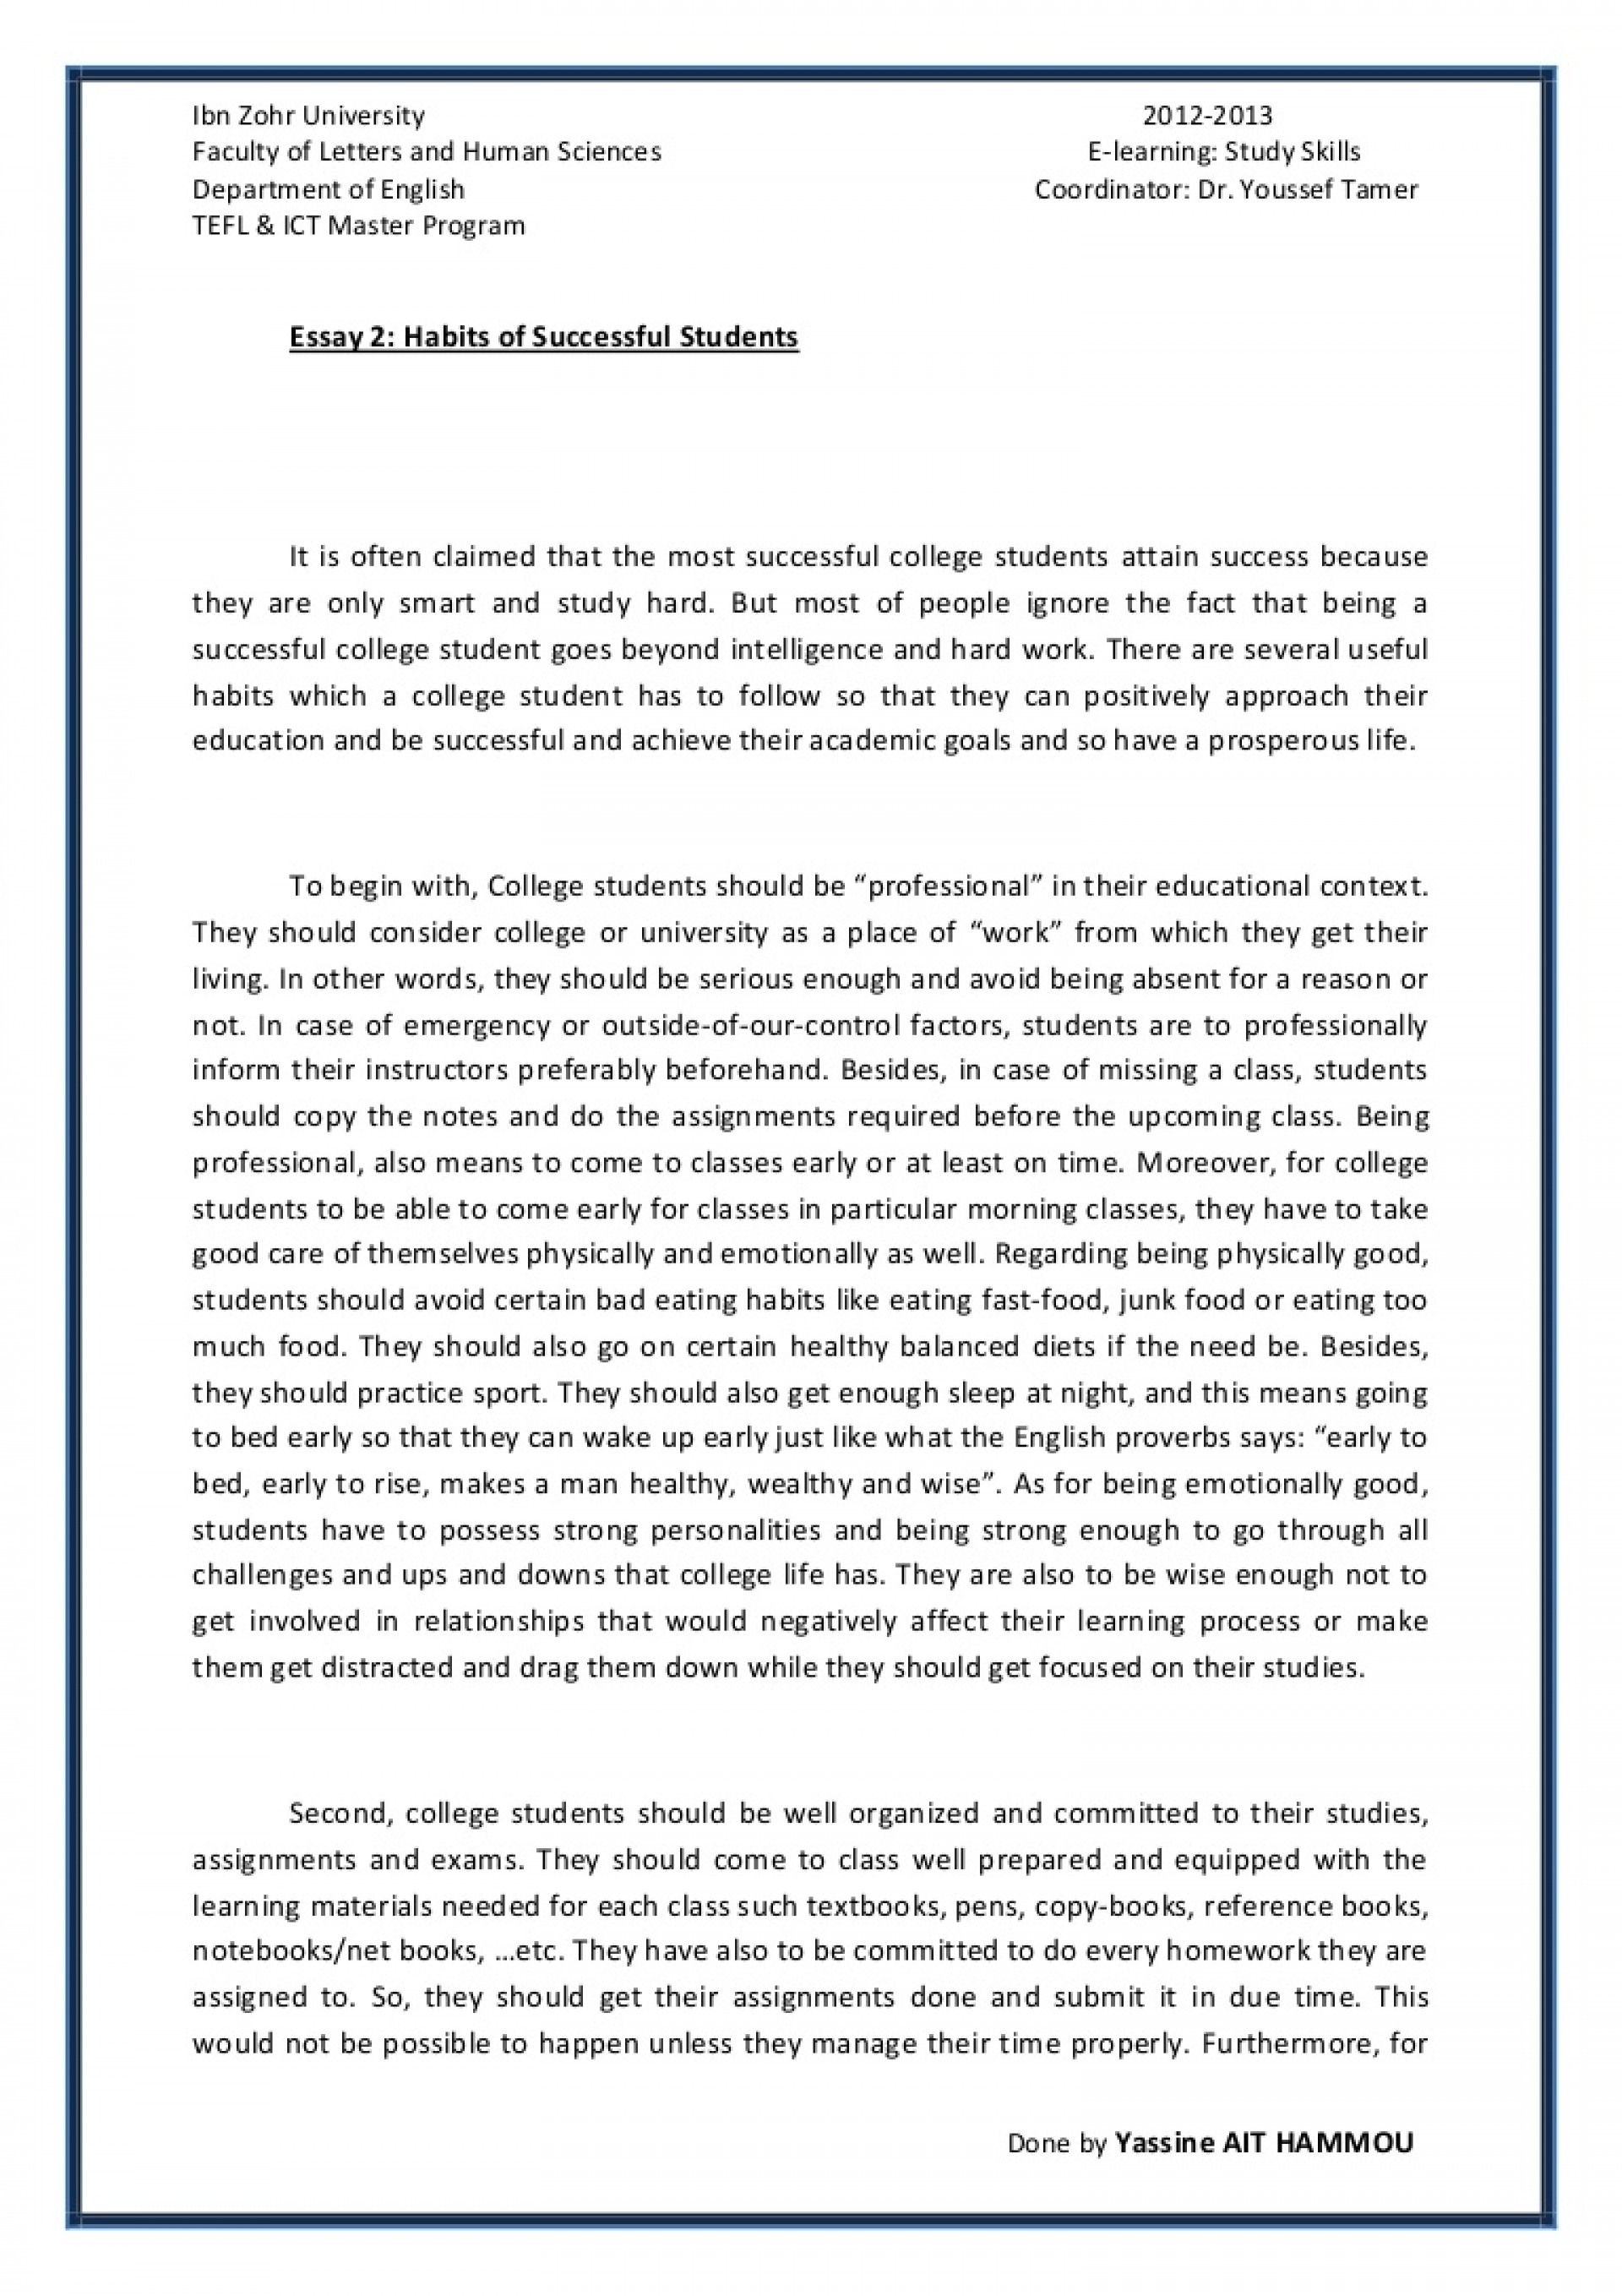 017 Essay Example Essay2 Succesfulcollegestudentshabitsbyyassineaithammou Phpapp01 Thumbnail On Breathtaking Career Goals And Aspirations Sample Choosing A Path 1920